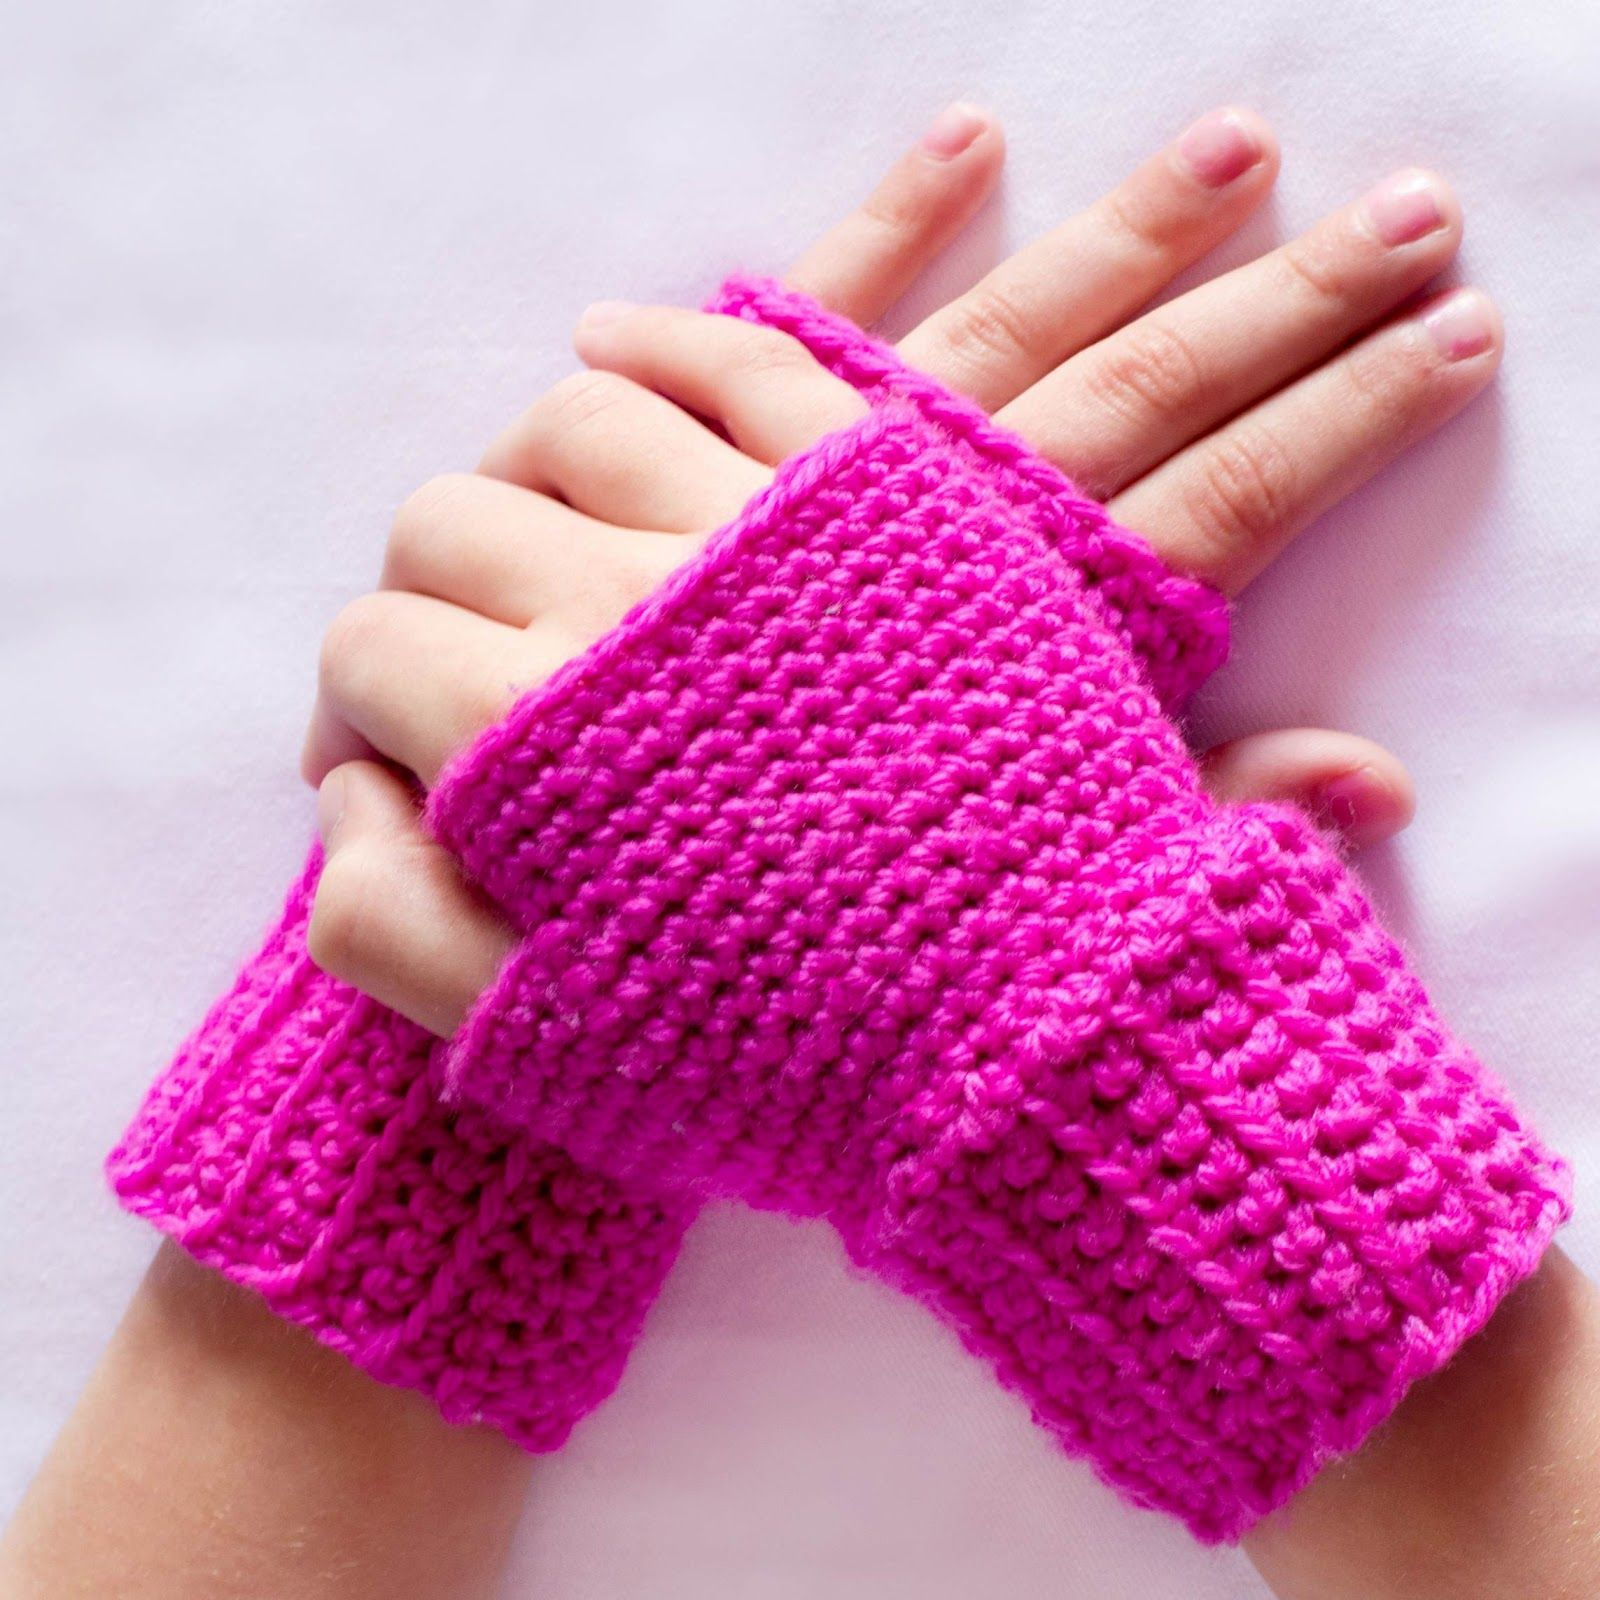 Princess in pink basic fingerless gloves crochet pattern basic fingerless gloves crochet pattern fits all sizes via hopeful honey bankloansurffo Choice Image